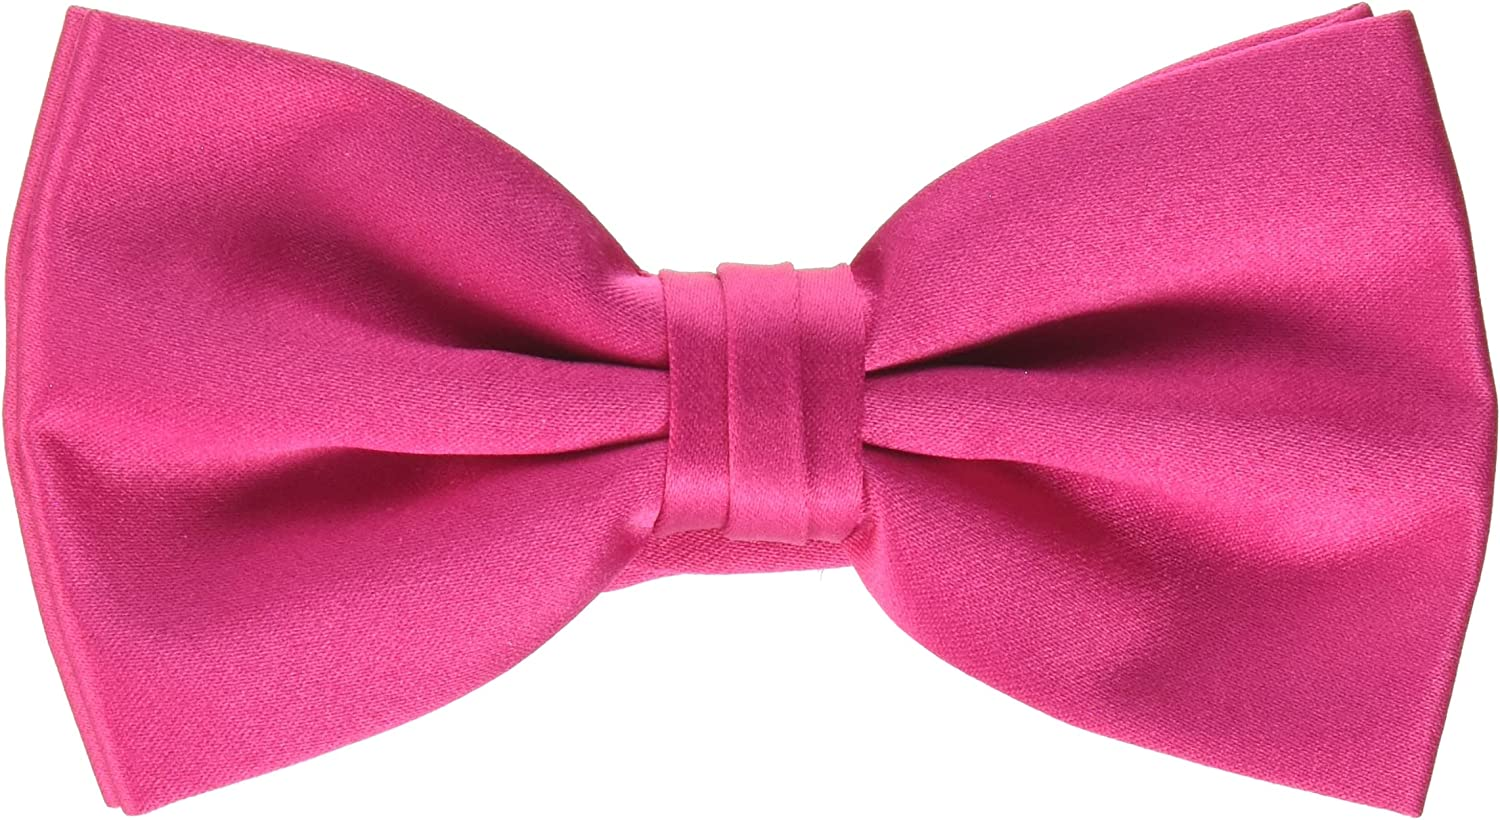 Stacy Adams Men's Satin OFFicial store solid Tie Size It is very popular Fuchsia Bow One